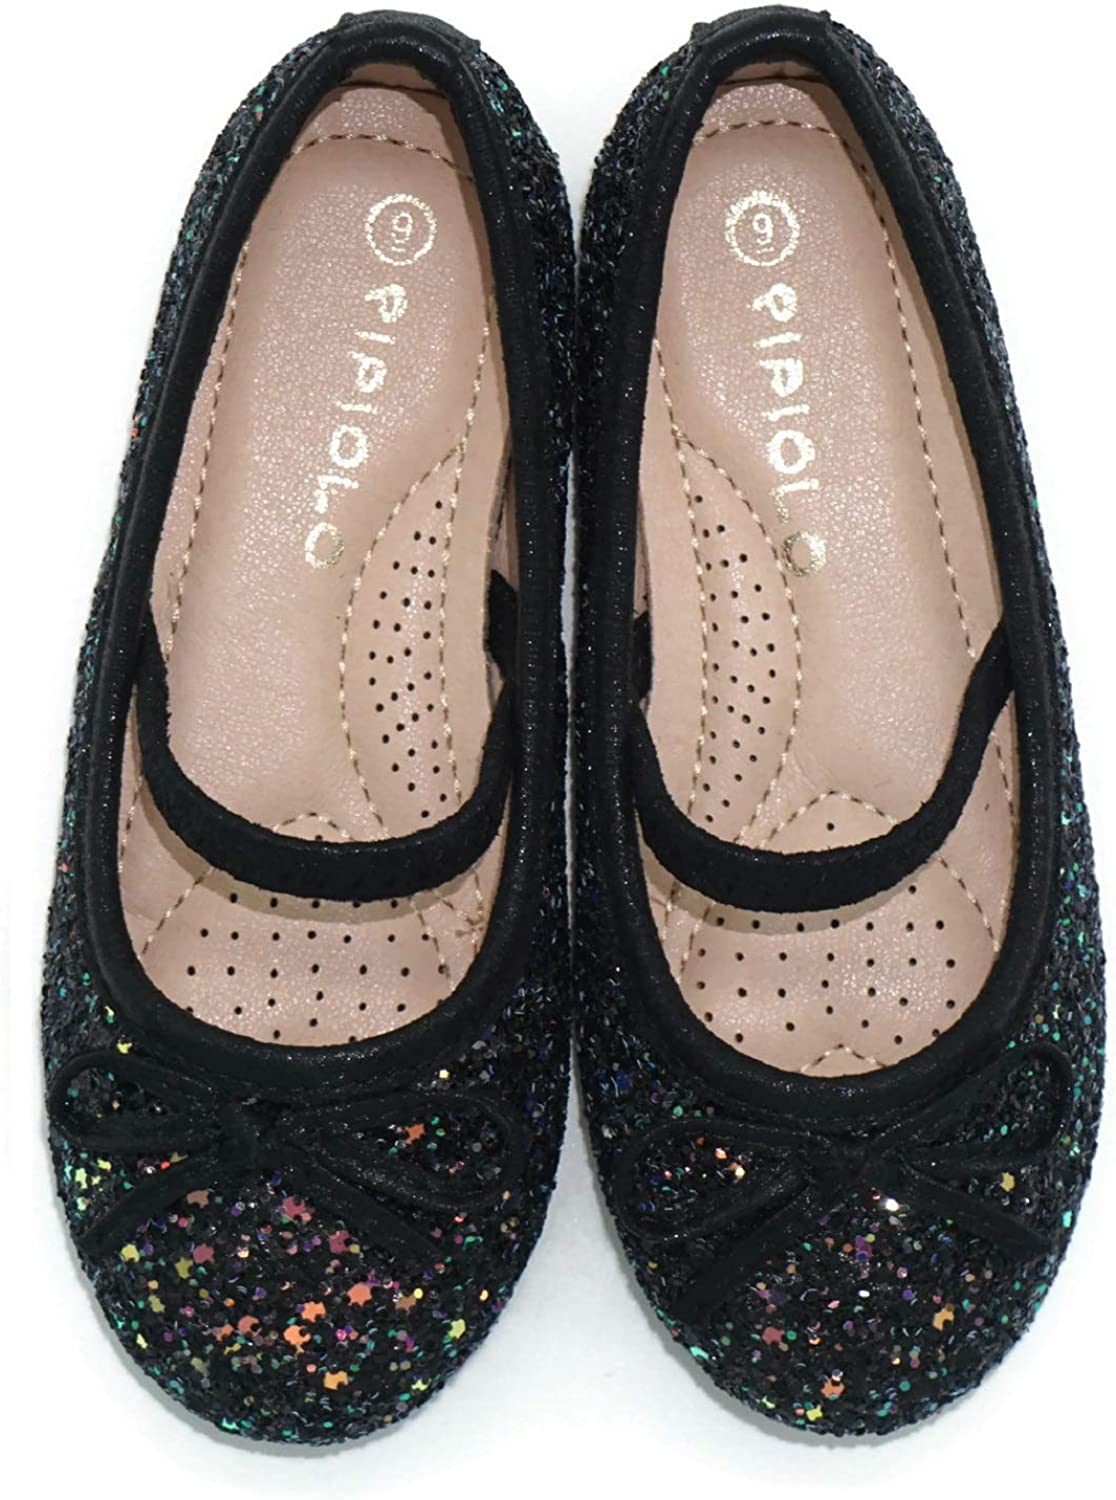 Quantity limited Pipiolo Sparkling Mary Jane Ballerina for Bargain Flats – Gir Shoes